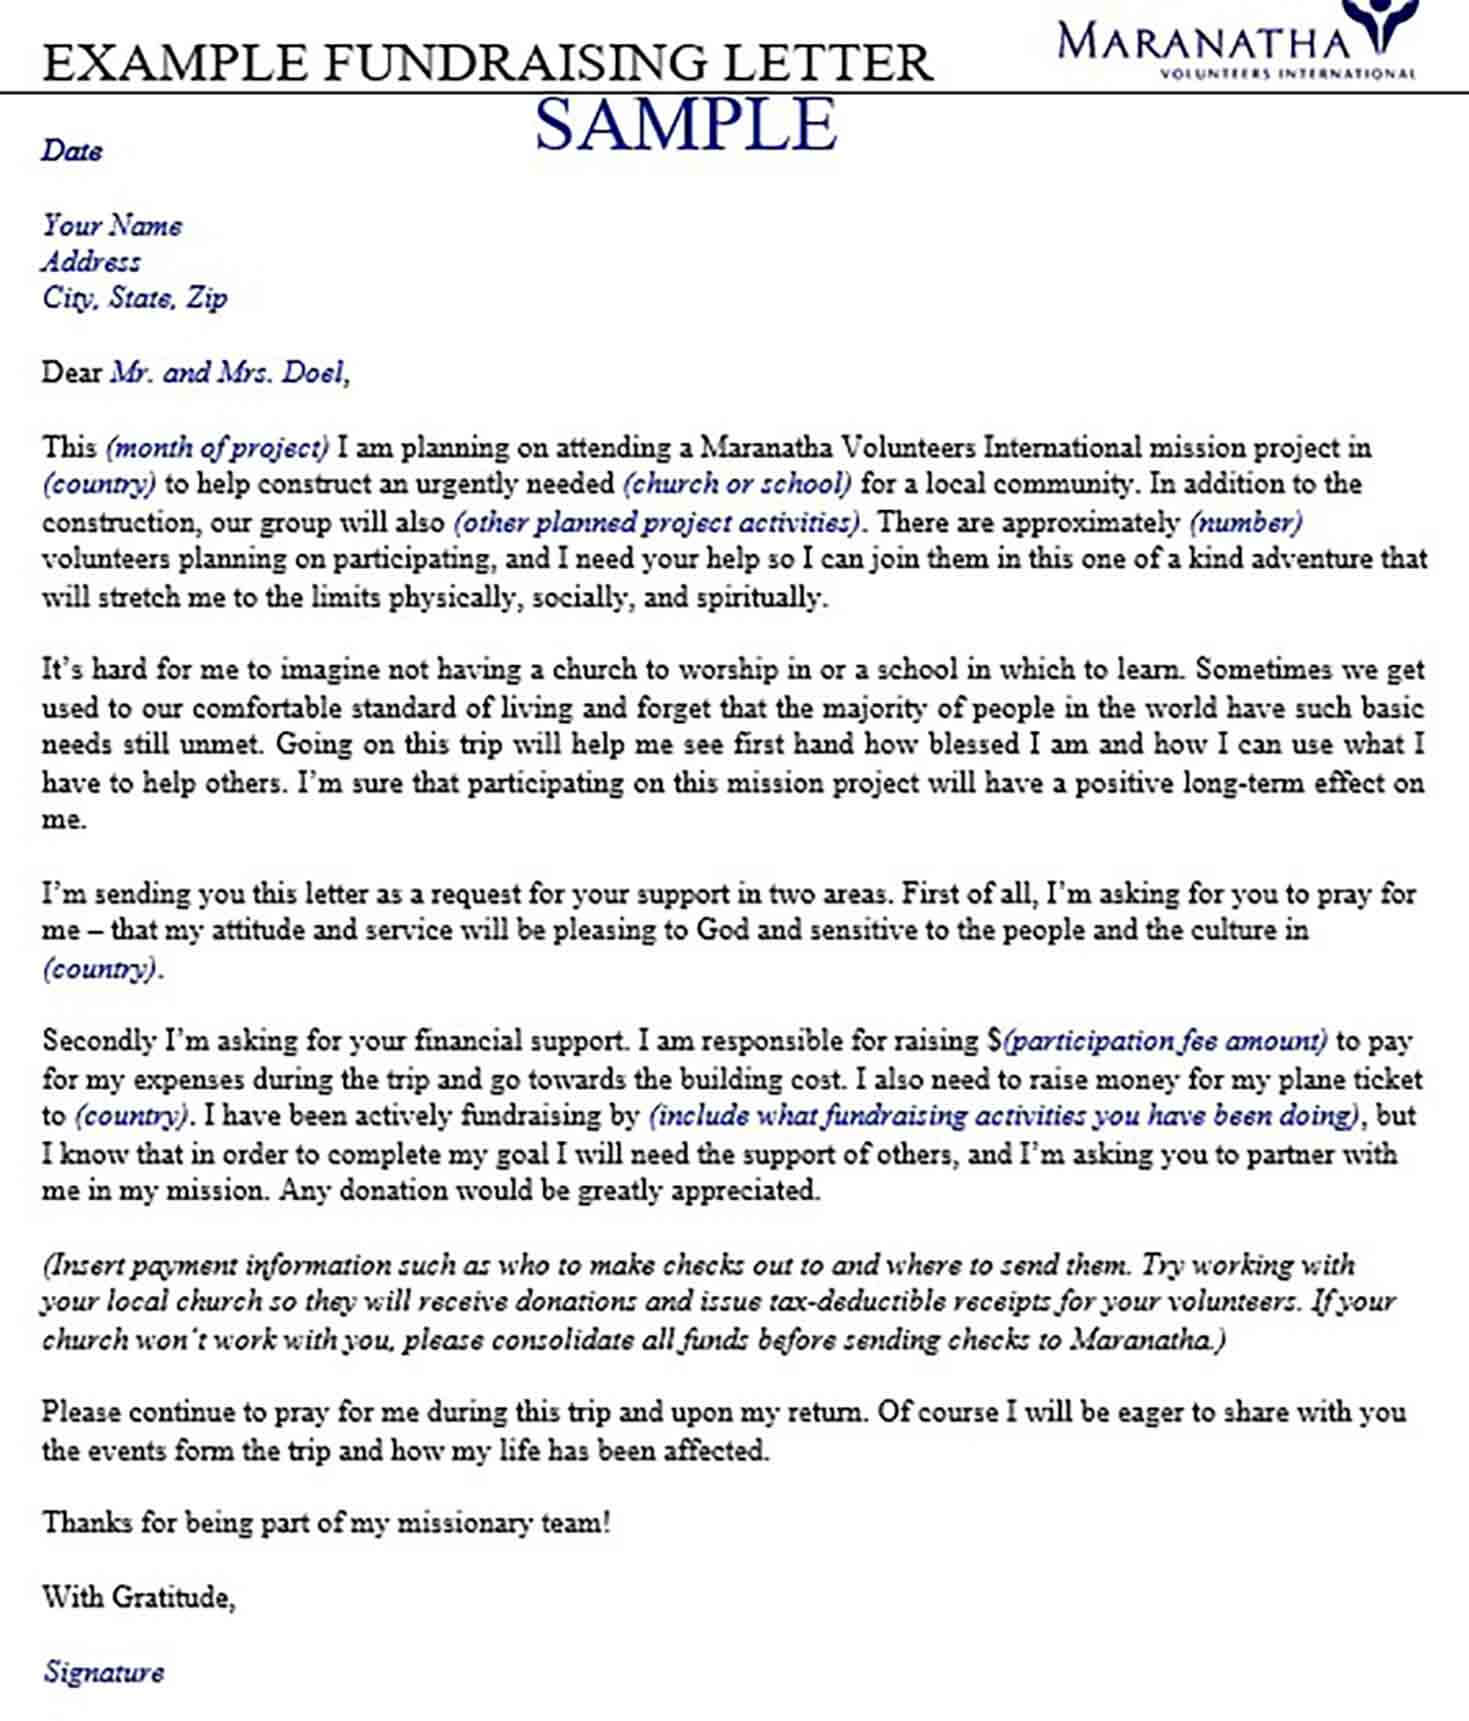 Example of Fundraising Letter